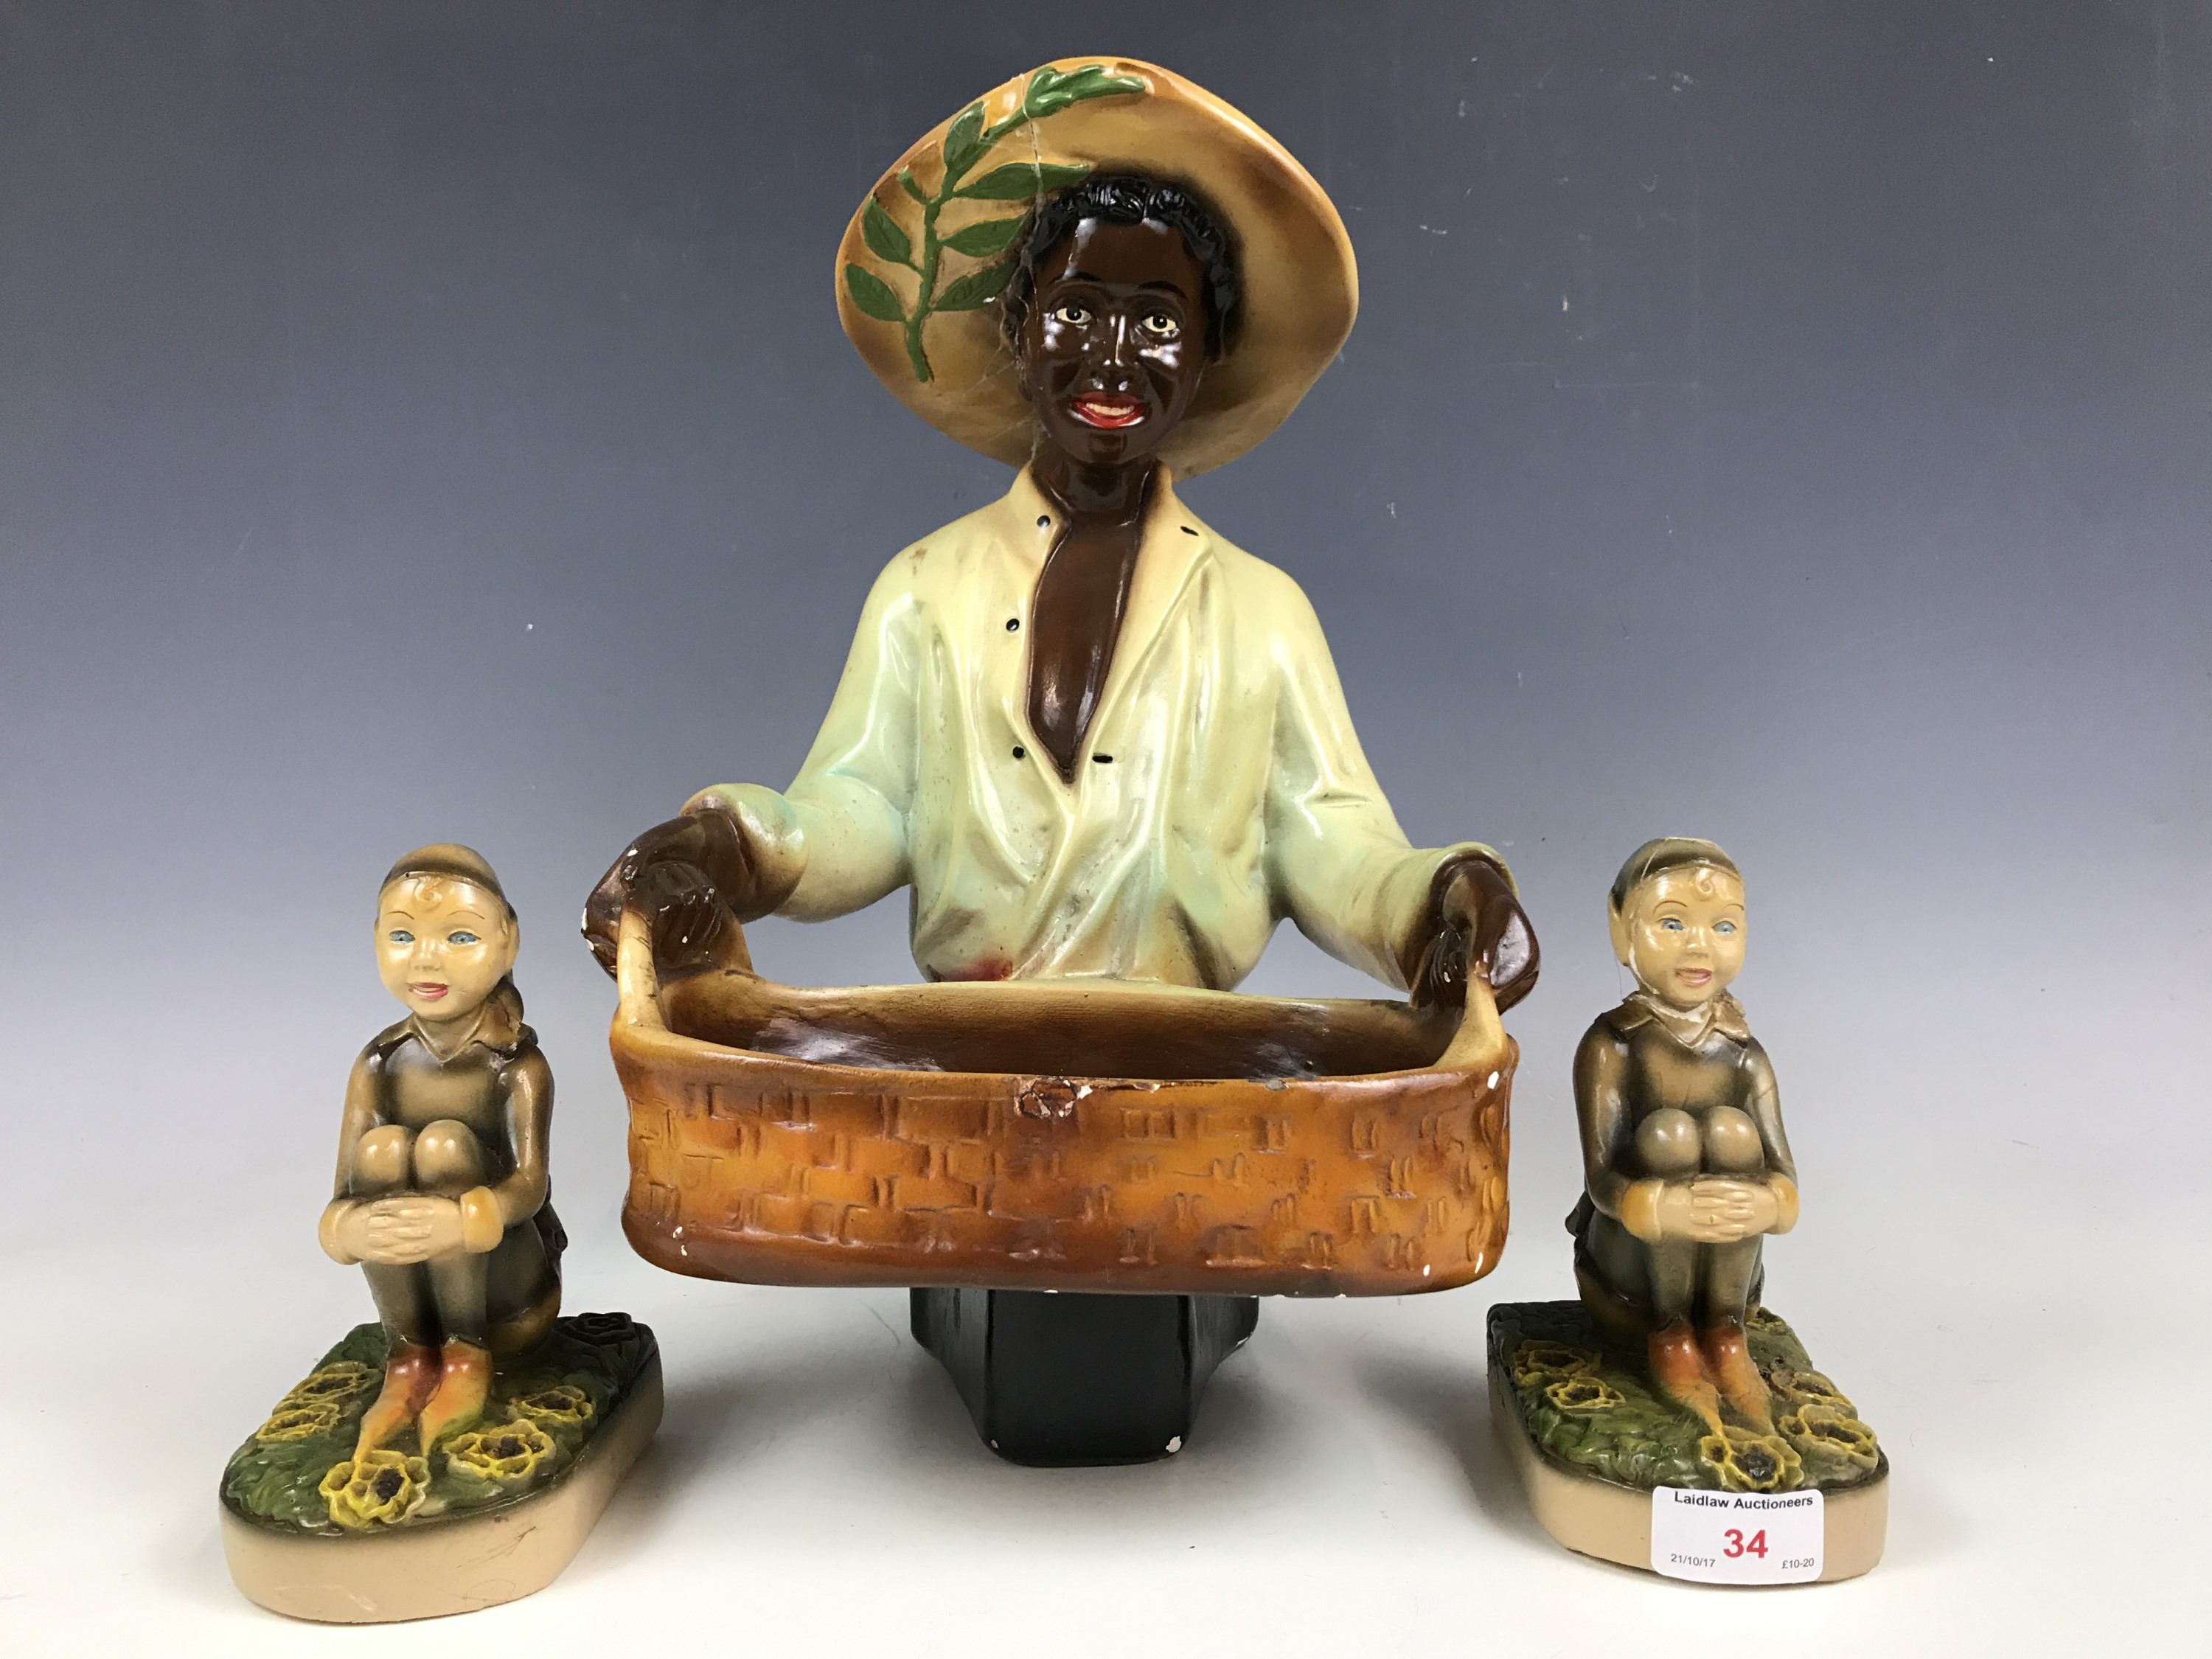 Lot 34 - A 1940's kitsch plaster figure together with two similar bookends (a/f)